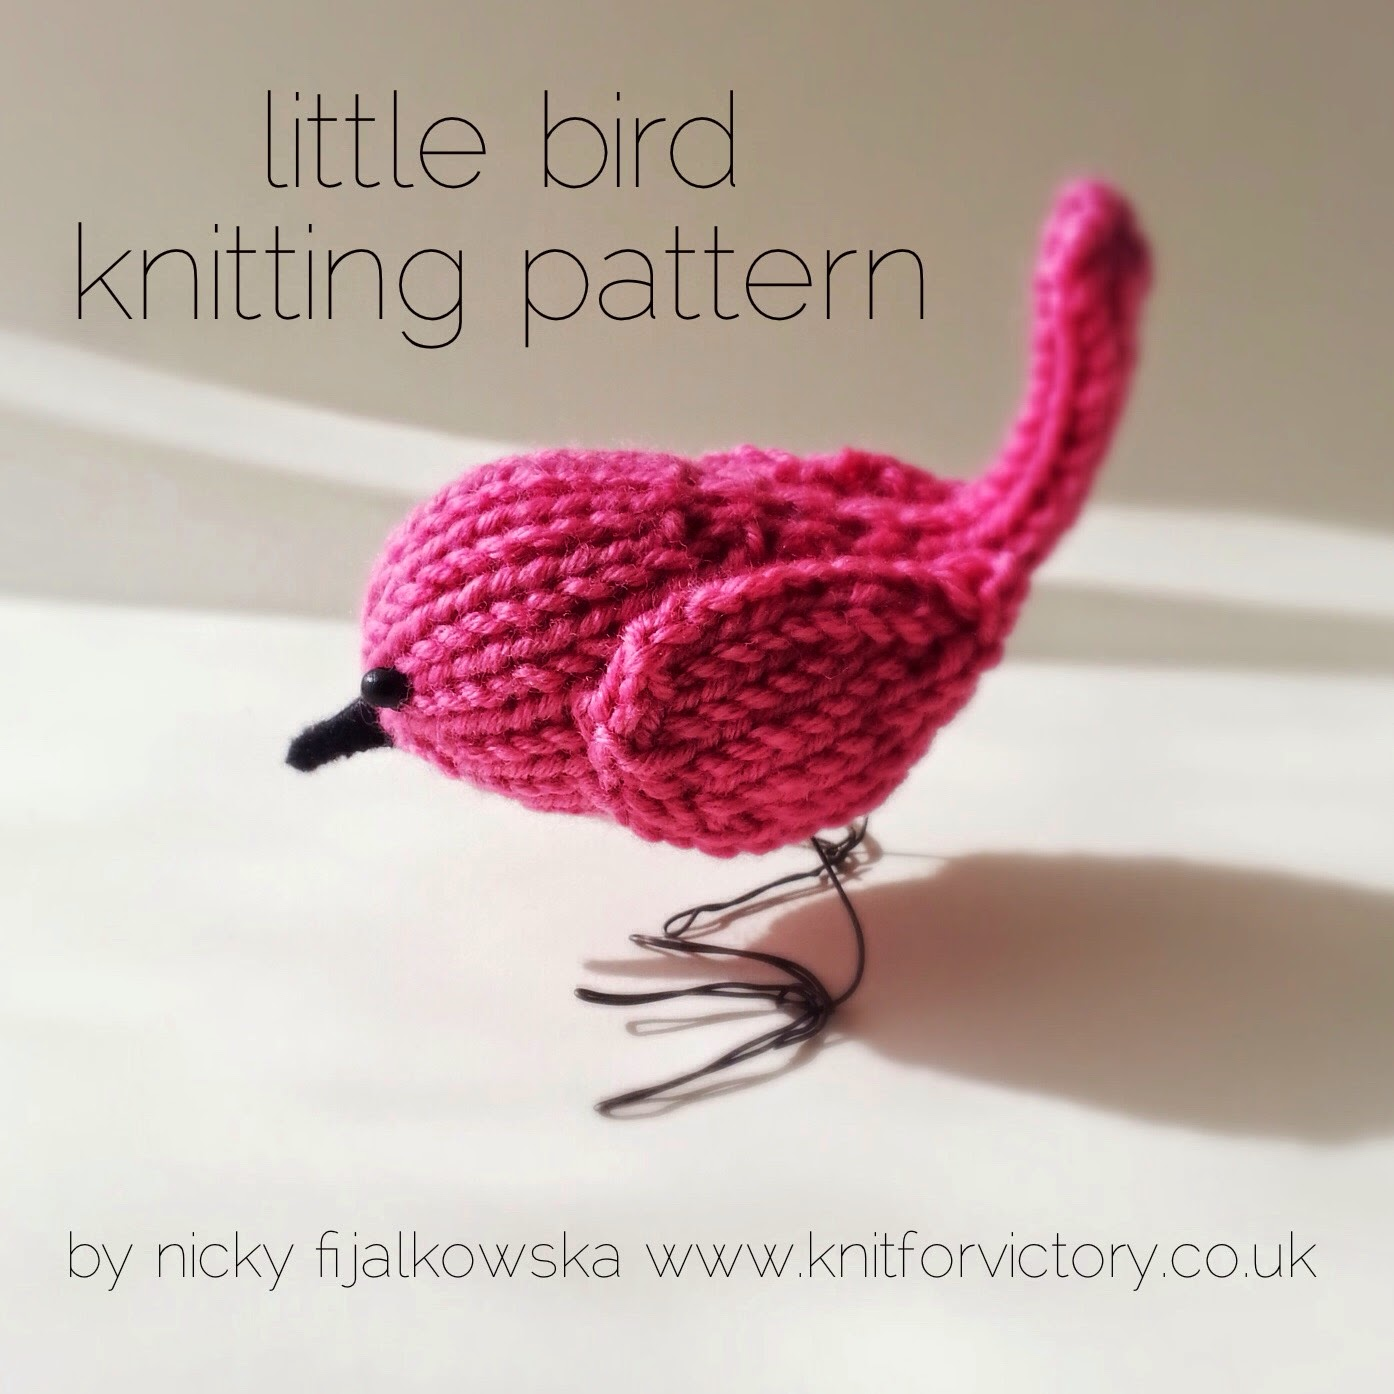 Knitted Bird Pattern : Knit for Victory: Cute little bird knitting pattern